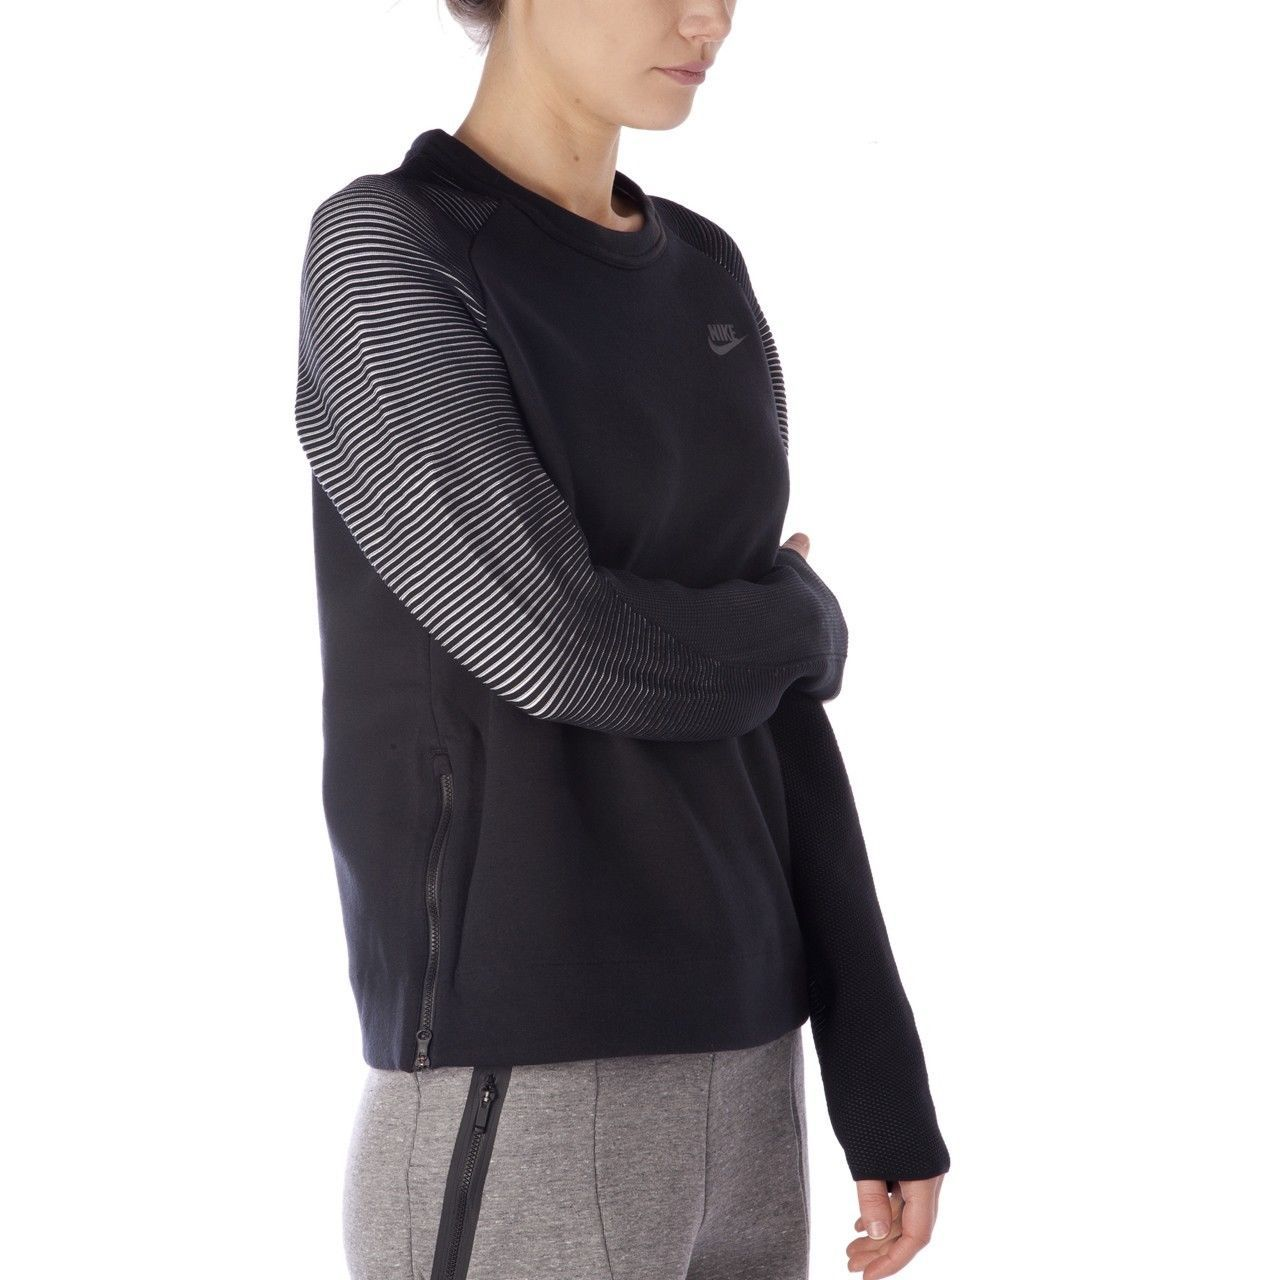 Women's Nike Sportswear Tech Fleece Sweatshirt 809537 010